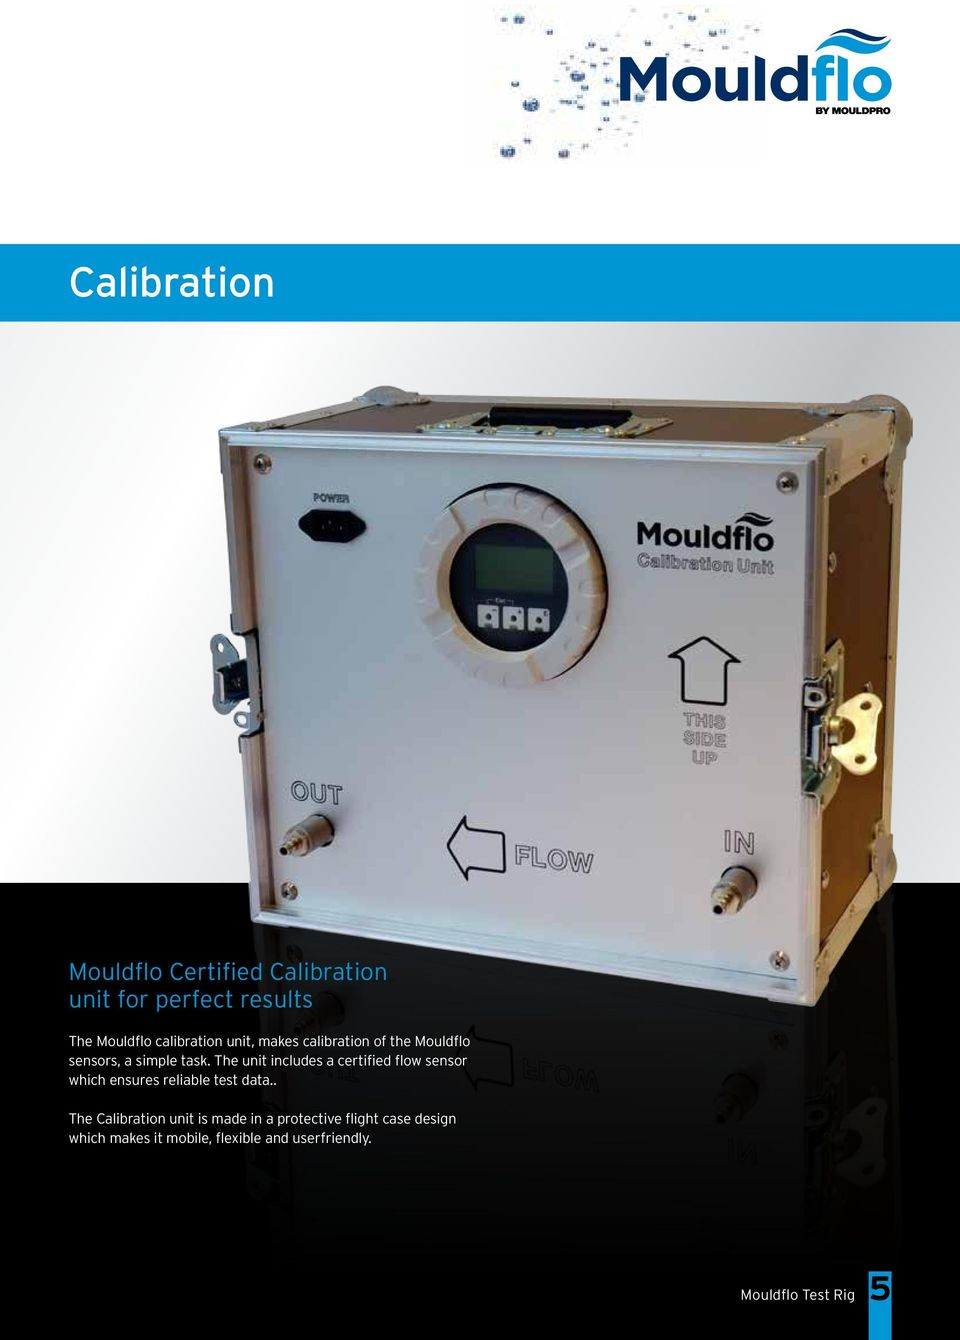 The unit includes a certified flow sensor which ensures reliable test data.